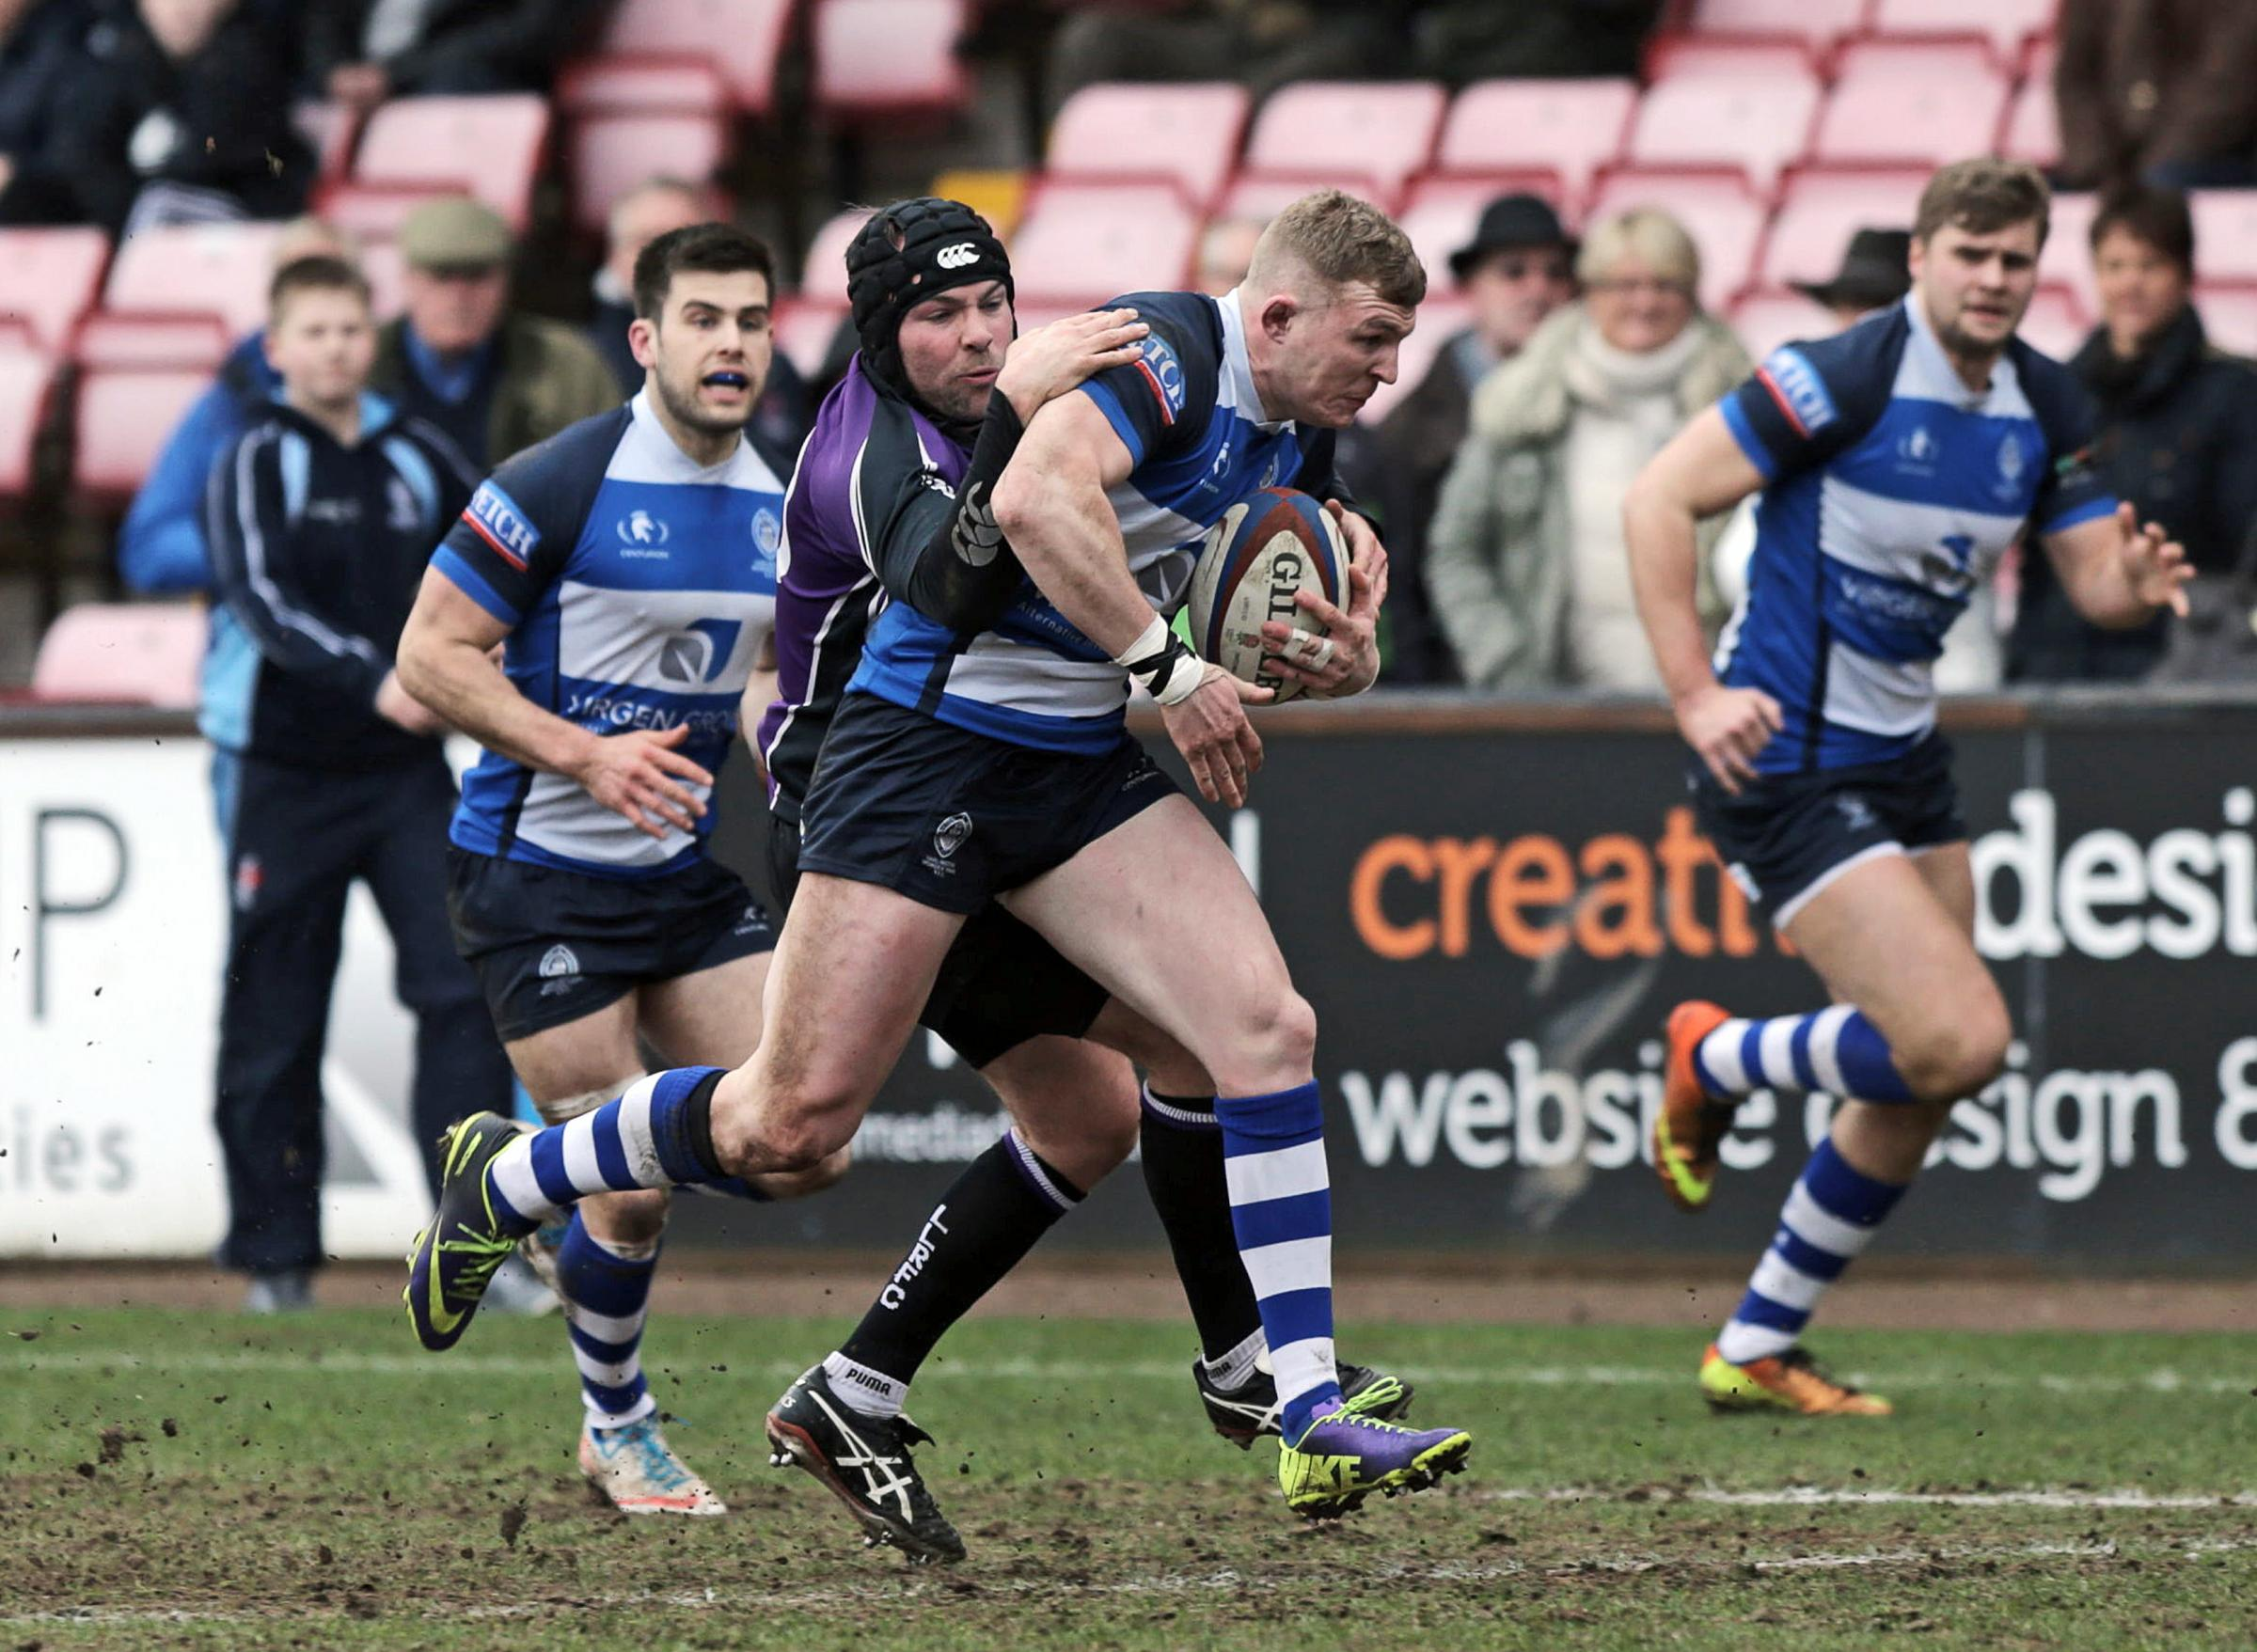 HEADING HOME: Callum McKenzie surges for the line for Mowden against Leicester Lions duiring their comprehensive victory